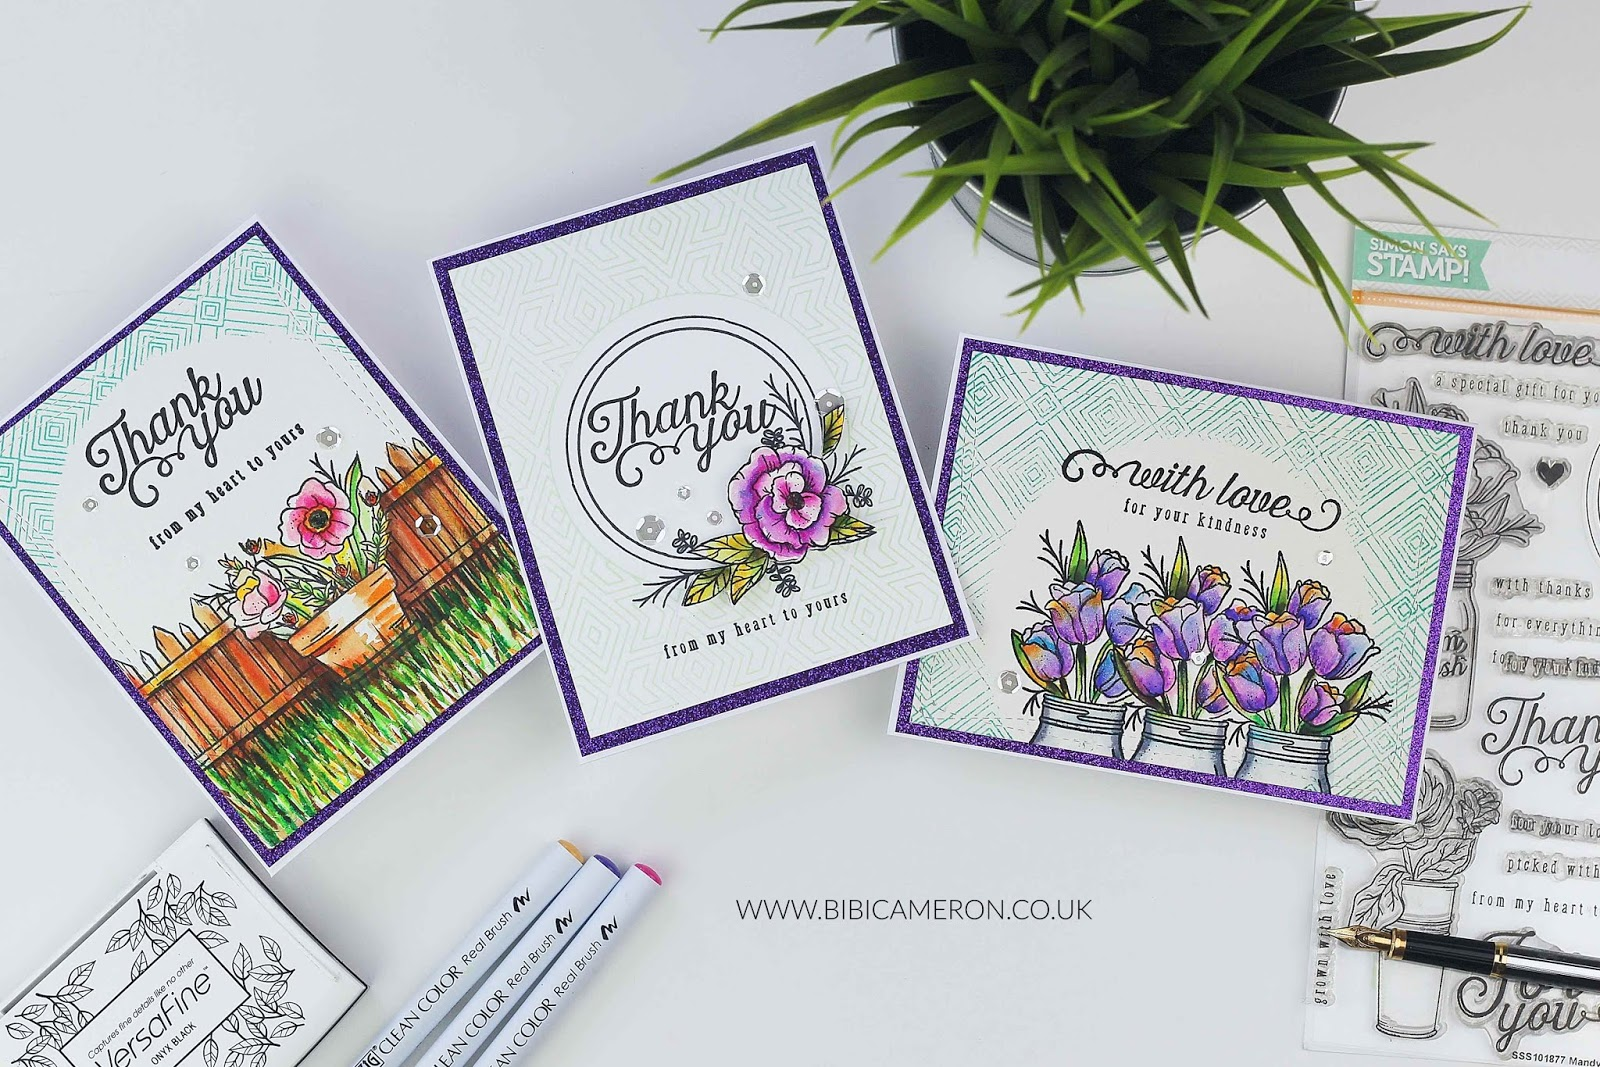 Thank You Cards with SSS Mandy's Flowers Stamp Set + Nuvo watercolor pencils